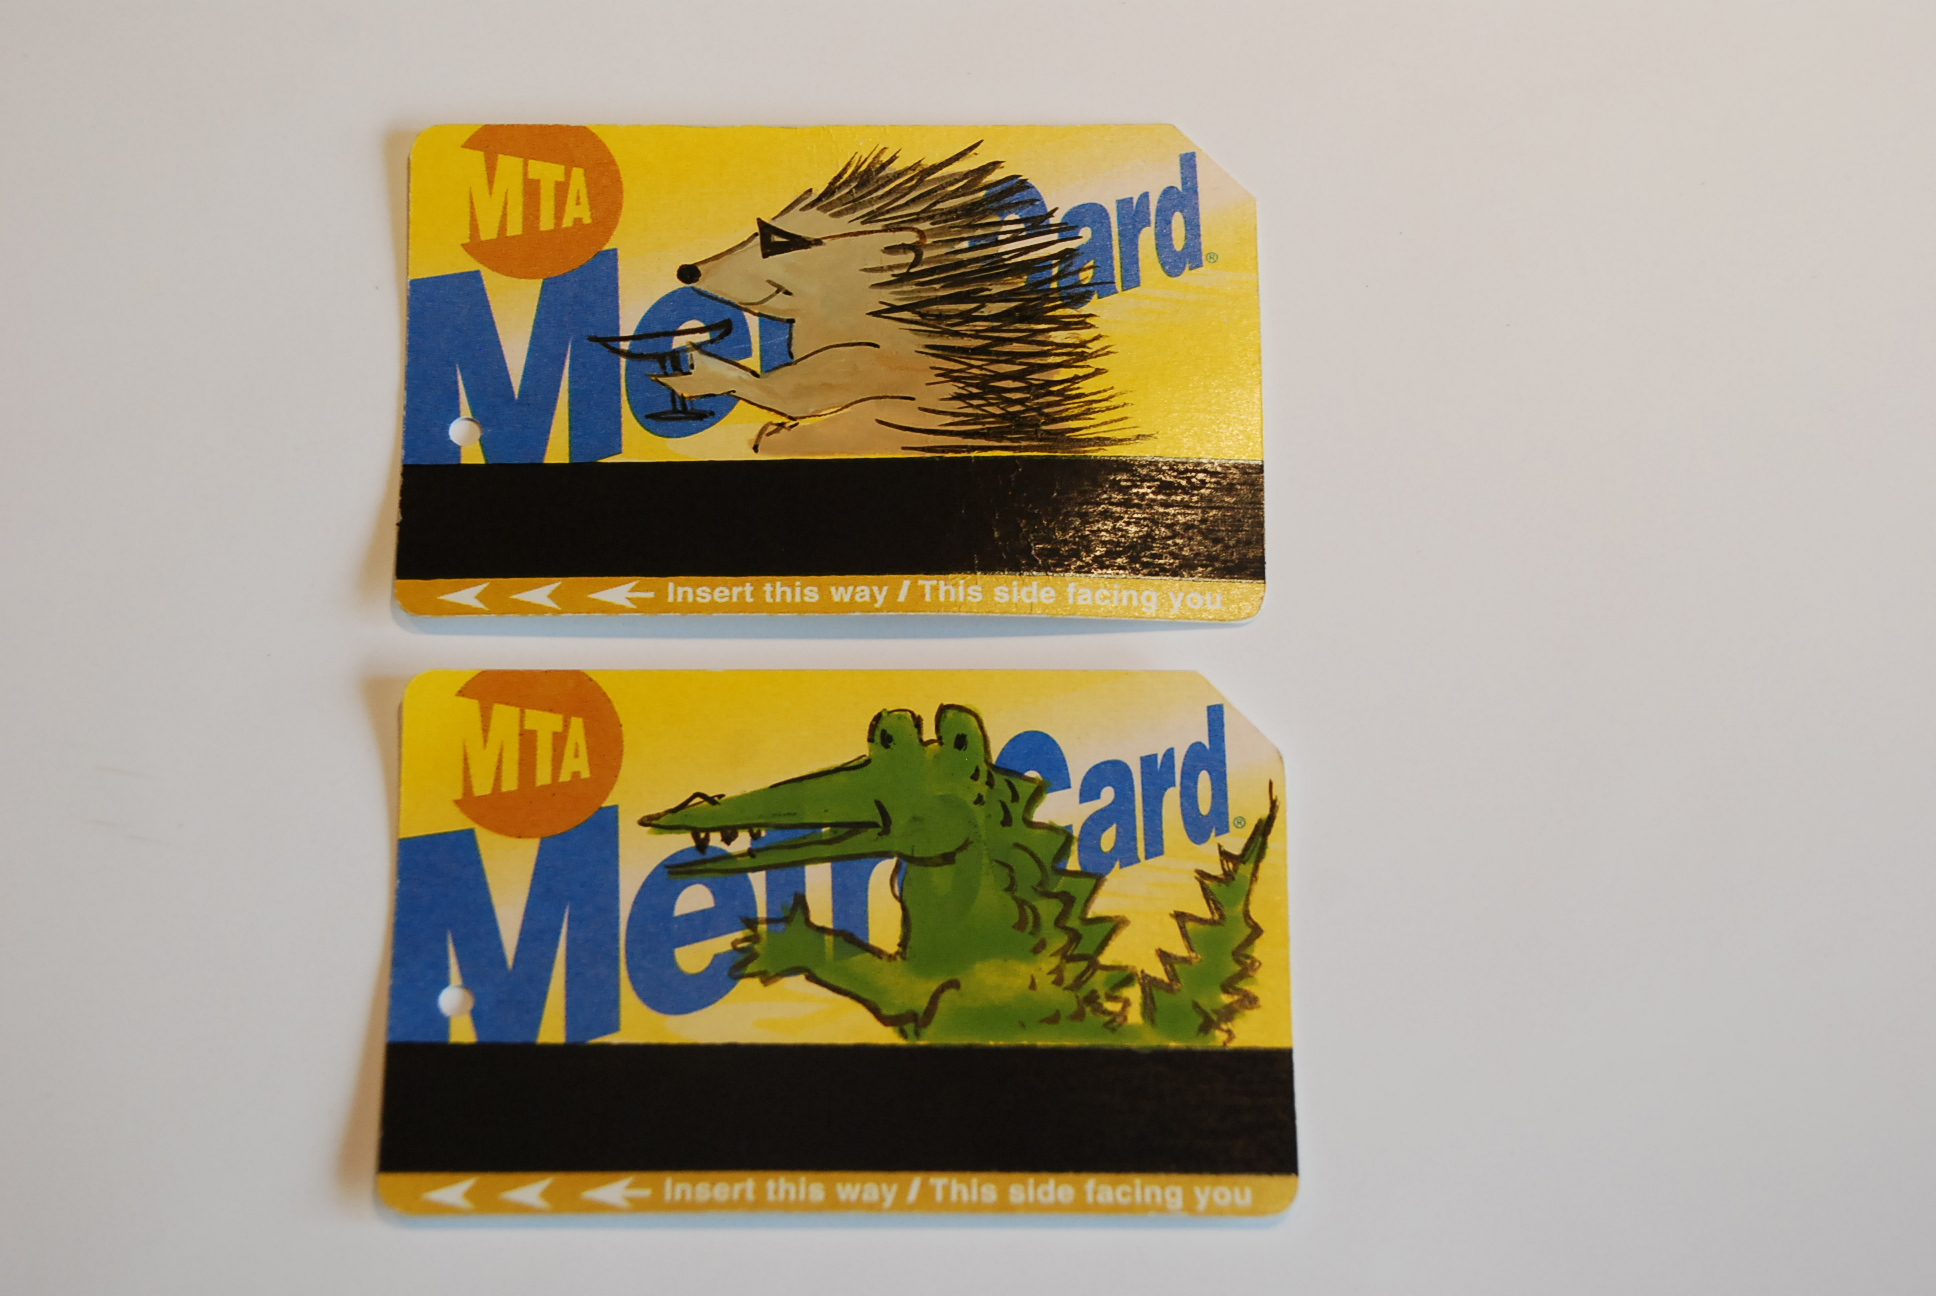 Lancelot and Agile's new business venture, personalized Metro cards